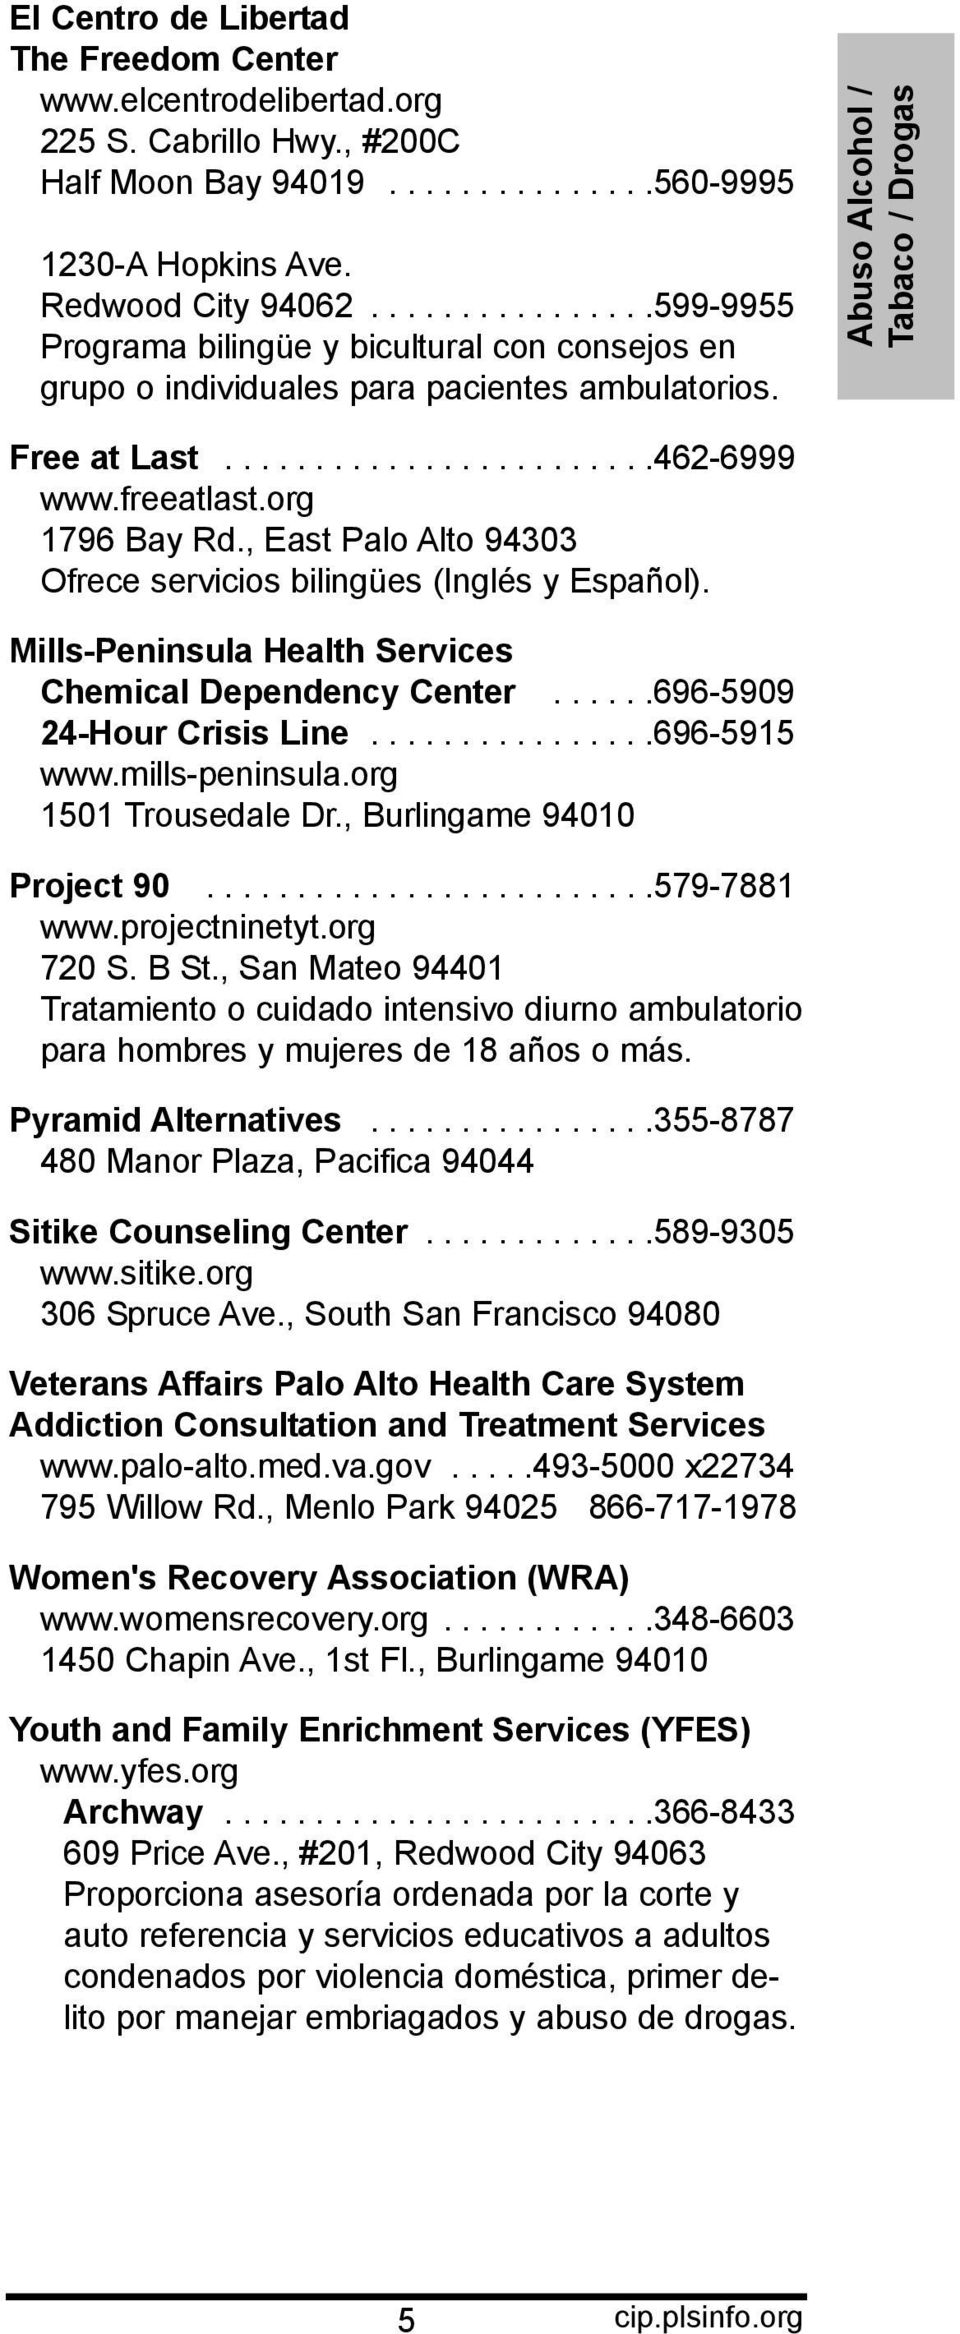 freeatlast.org 1796 Bay Rd., East Palo Alto 94303 Ofrece servicios bilingües (Inglés y Español). Mills-Peninsula Health Services Chemical Dependency Center......696-5909 24-Hour Crisis Line.